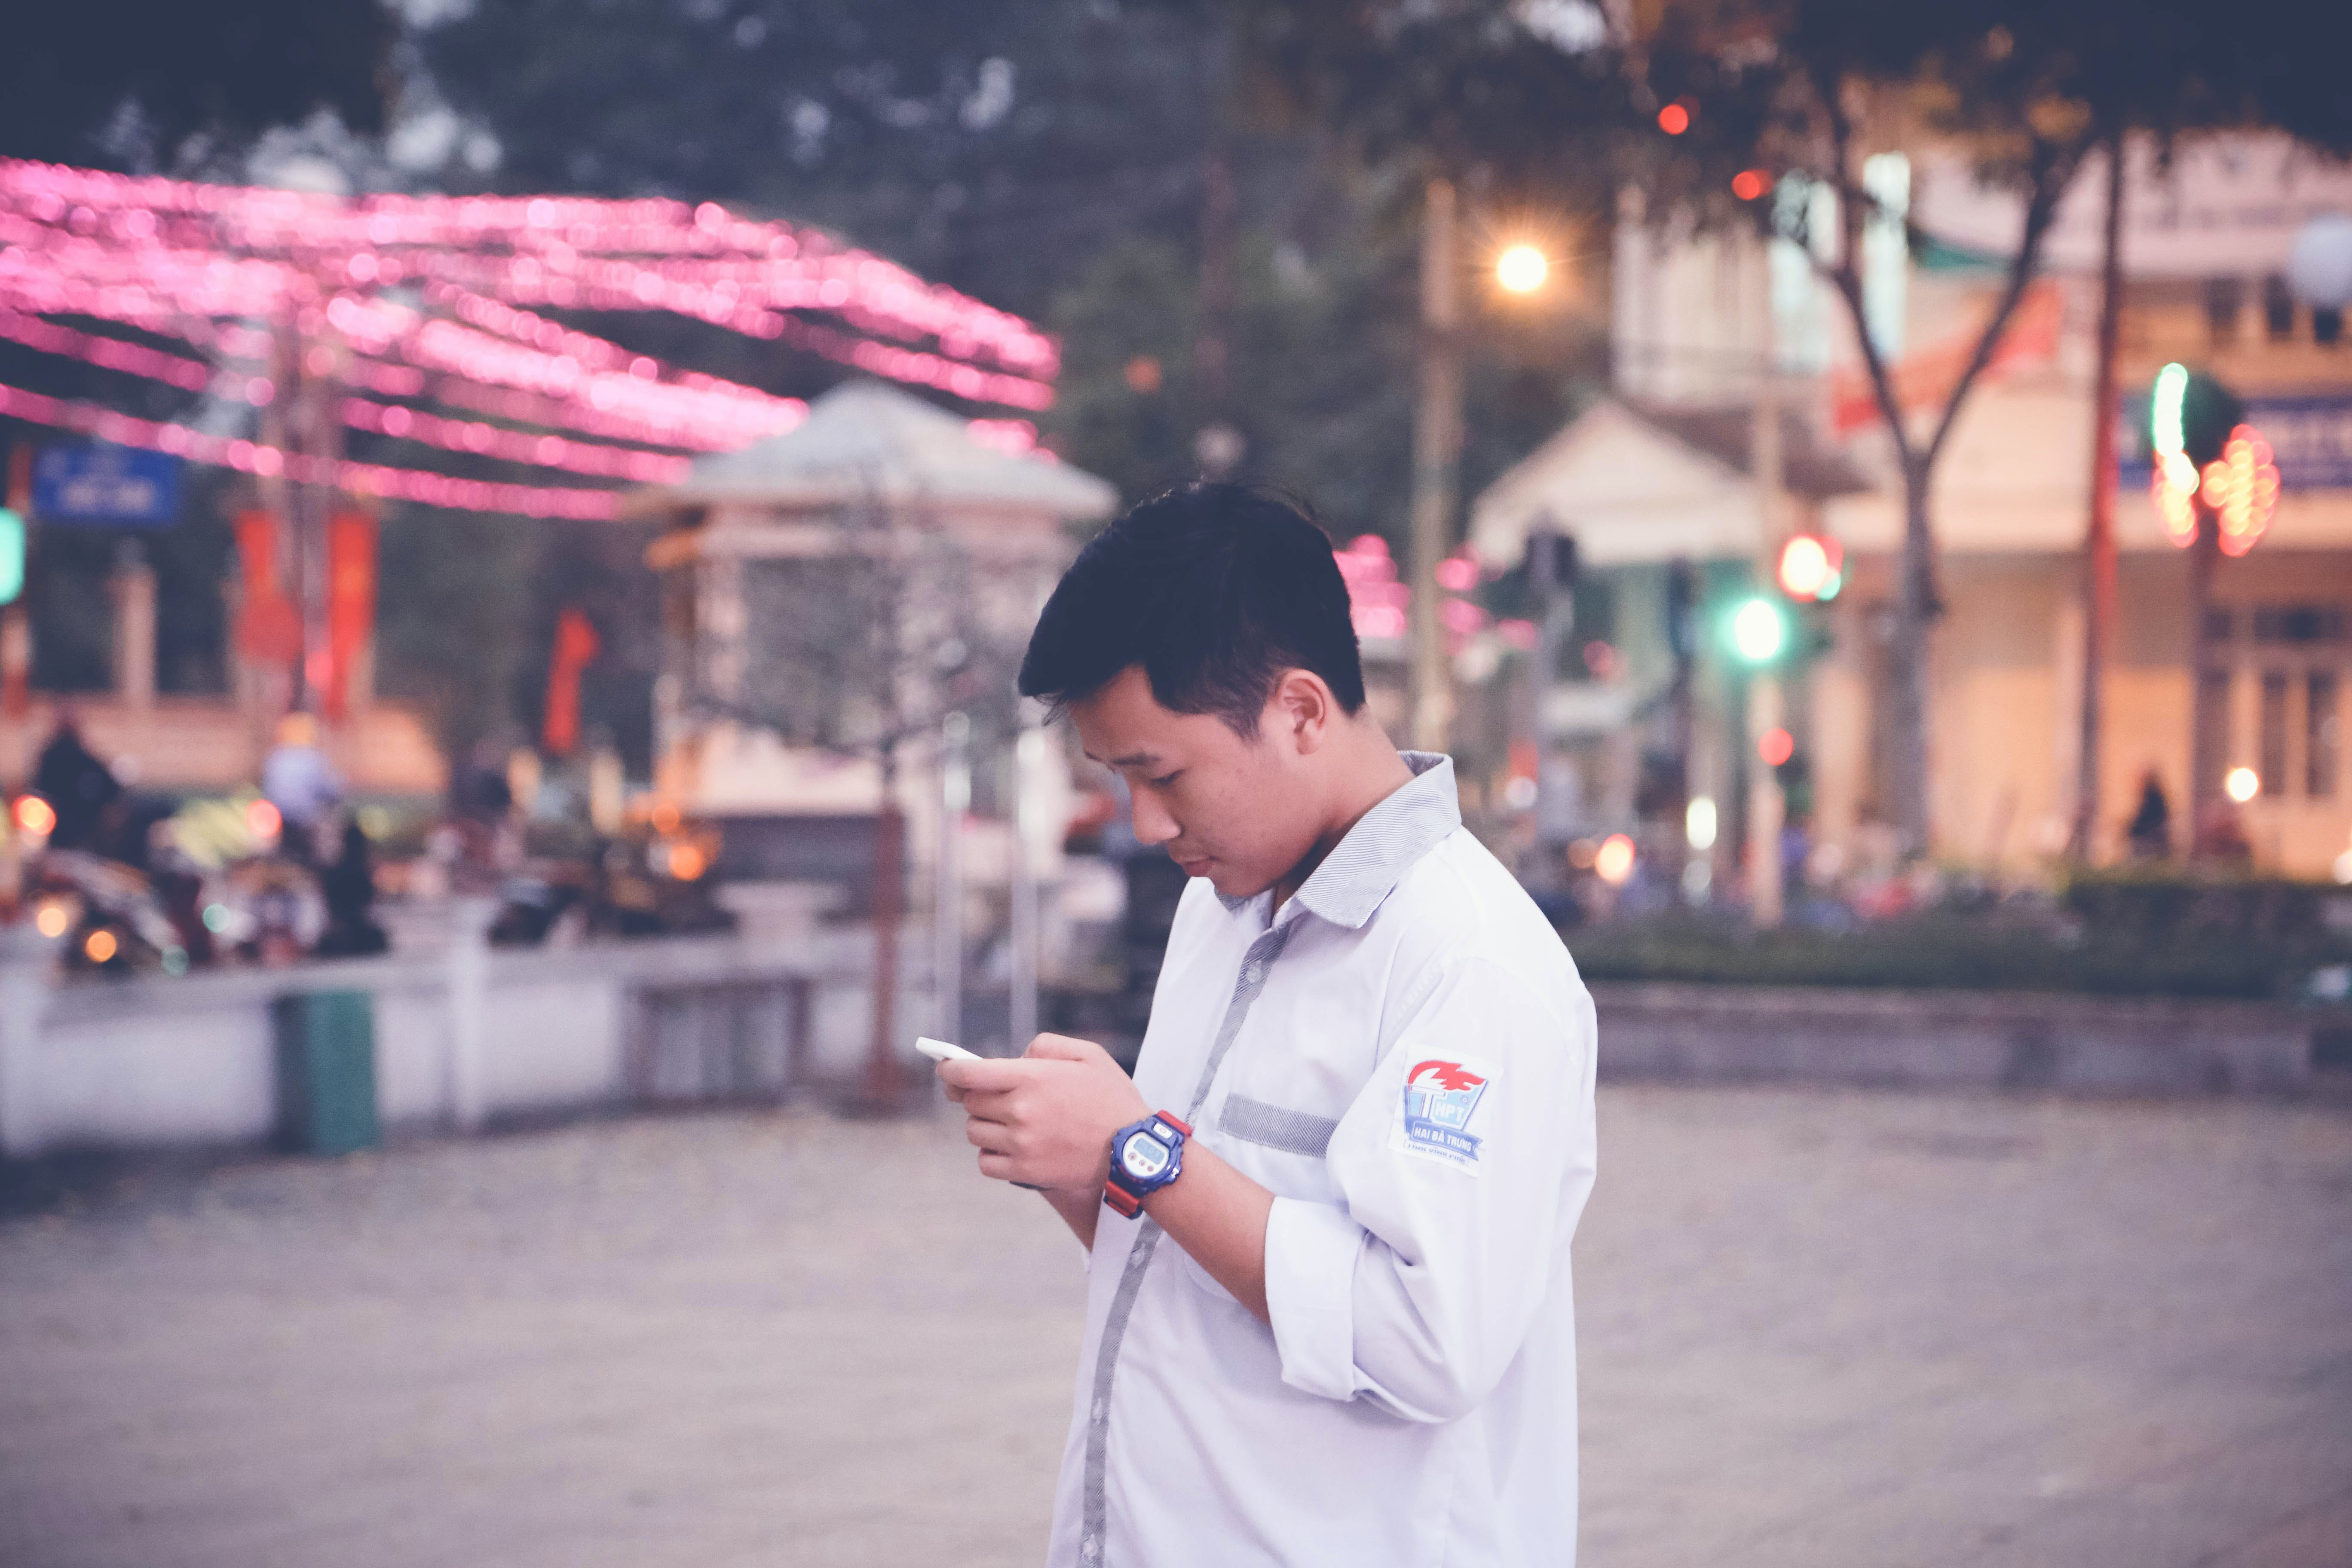 Focus Photography of Man Wearing White Sports Shirt Holding Smartphone Near Buntings